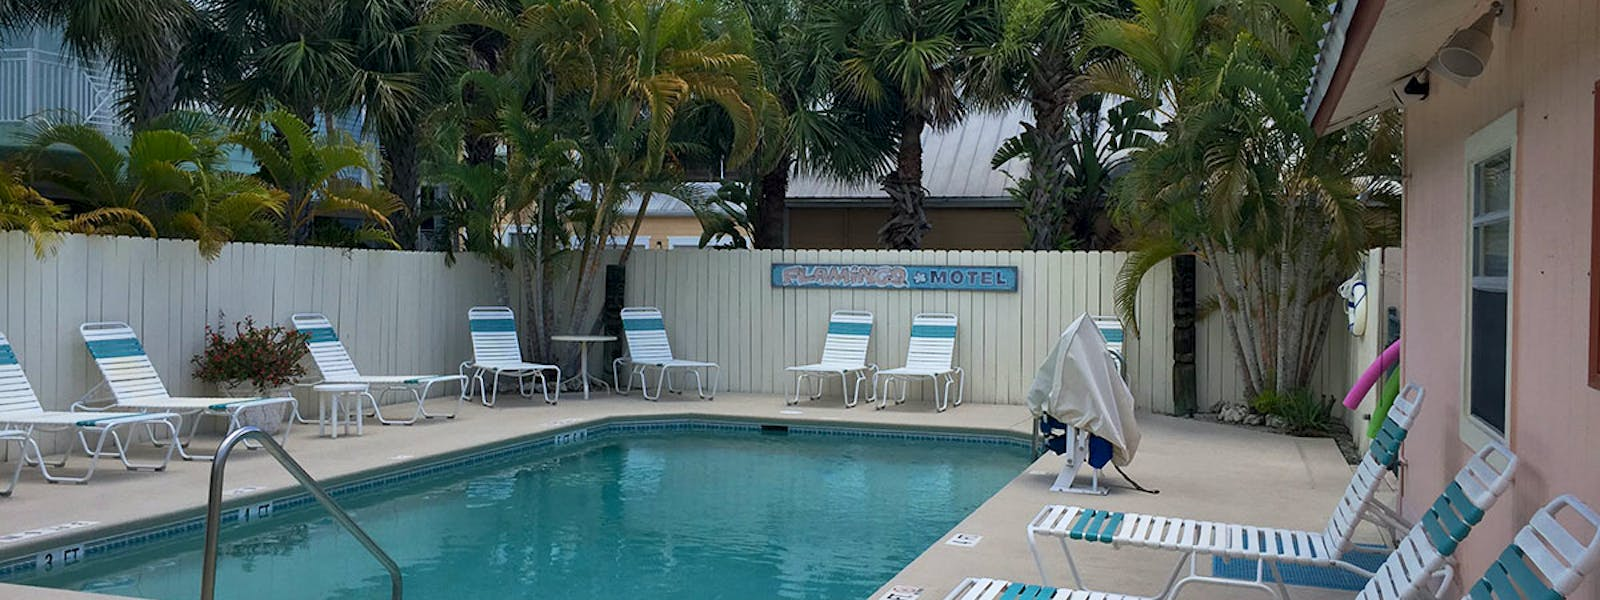 Heated pool at the Flamingo Motel & Villas Bonita Springs